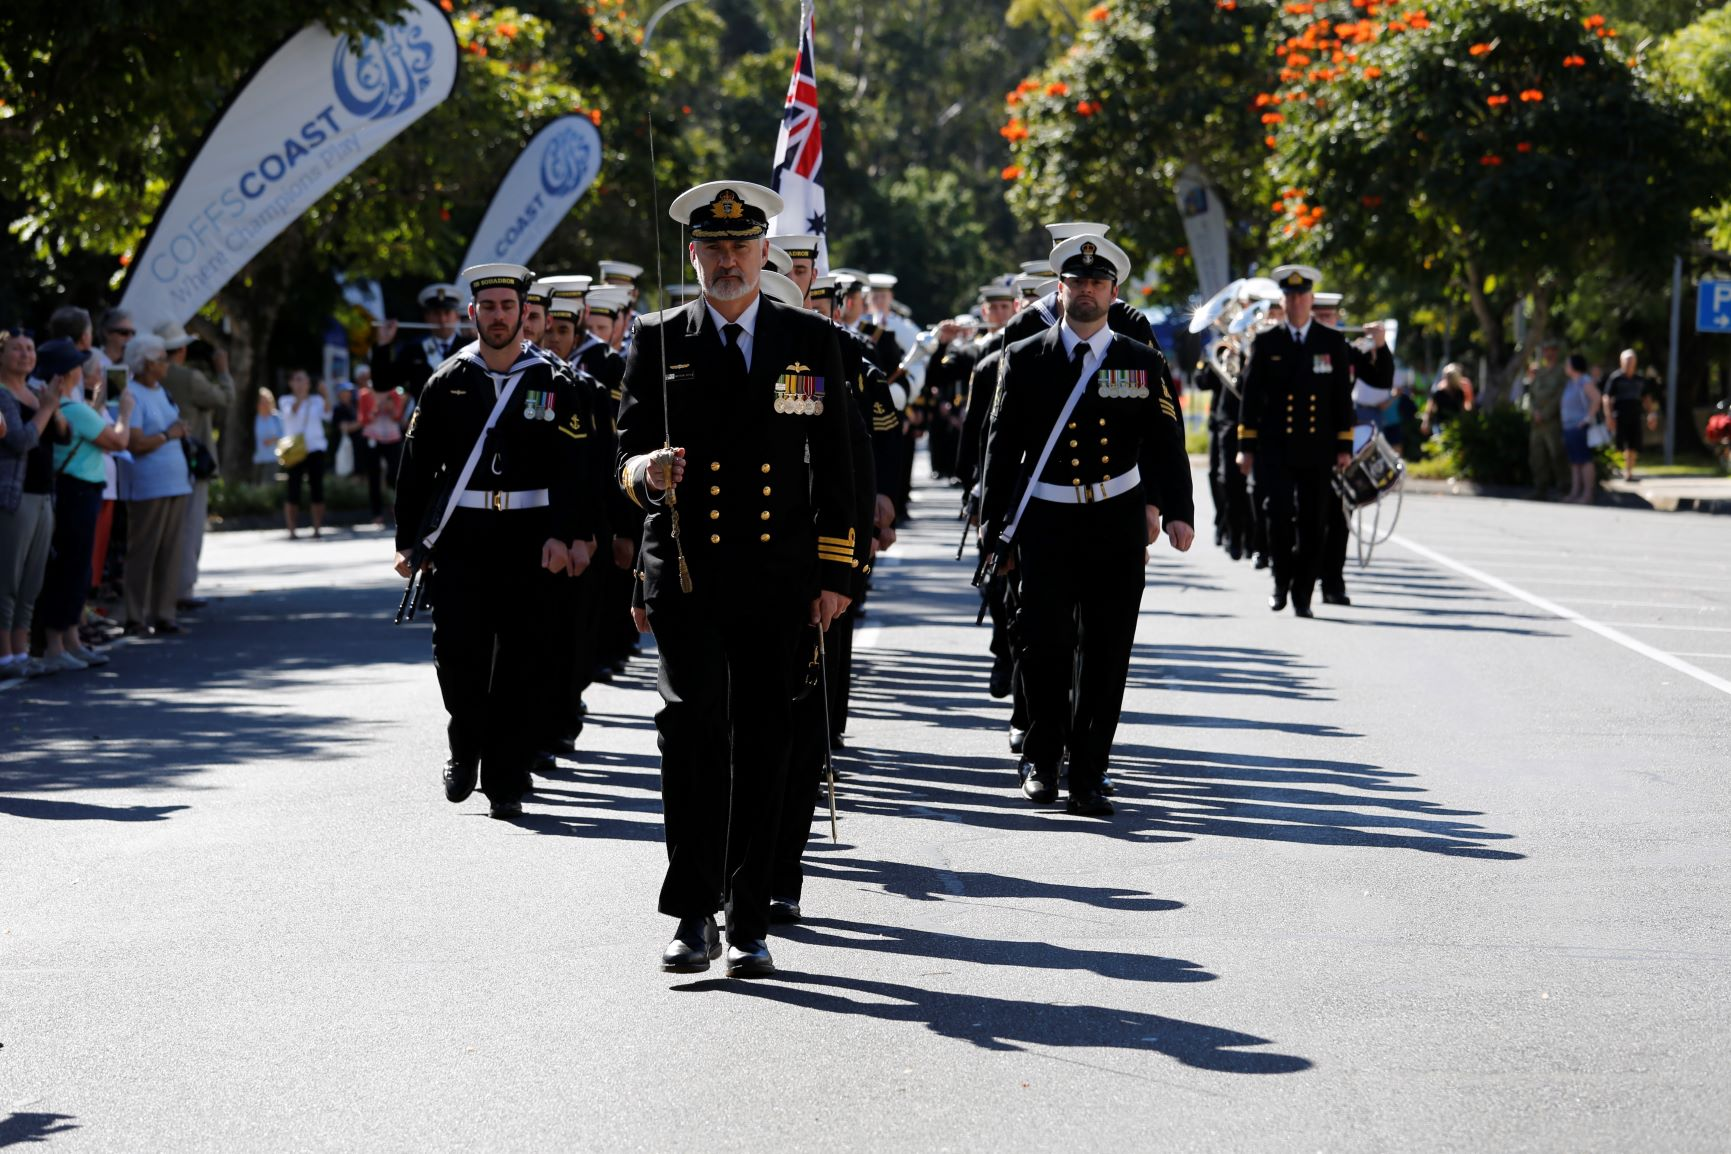 725 Squadron marching through Coffs Harbour.